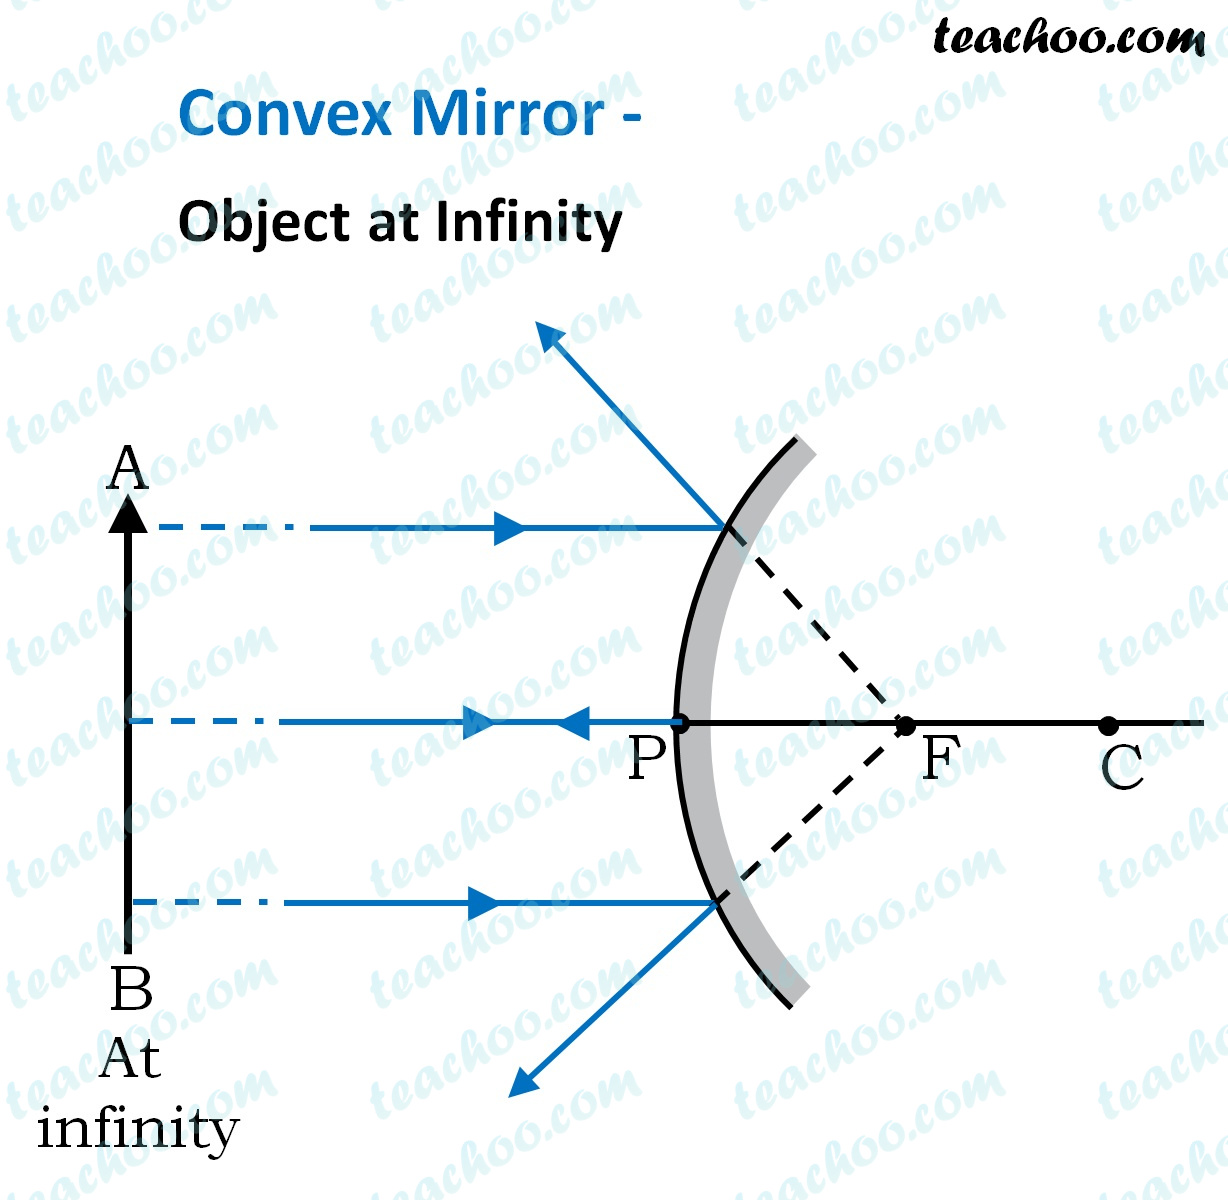 convex-mirror---object-at-infinity---ray-diagram---teachoo.jpg